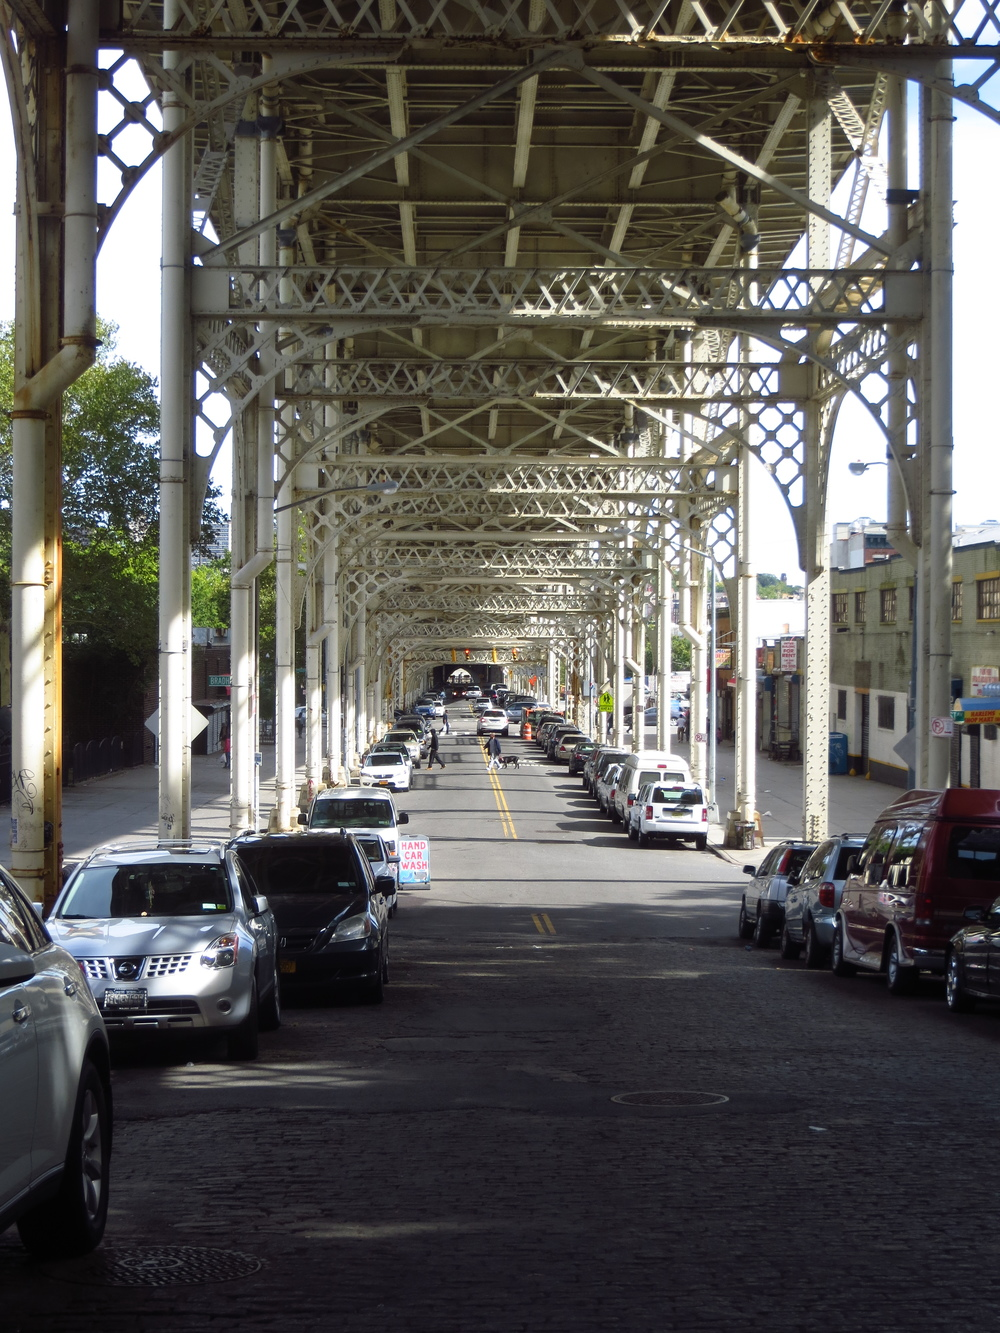 Under the 155th St. Viaduct